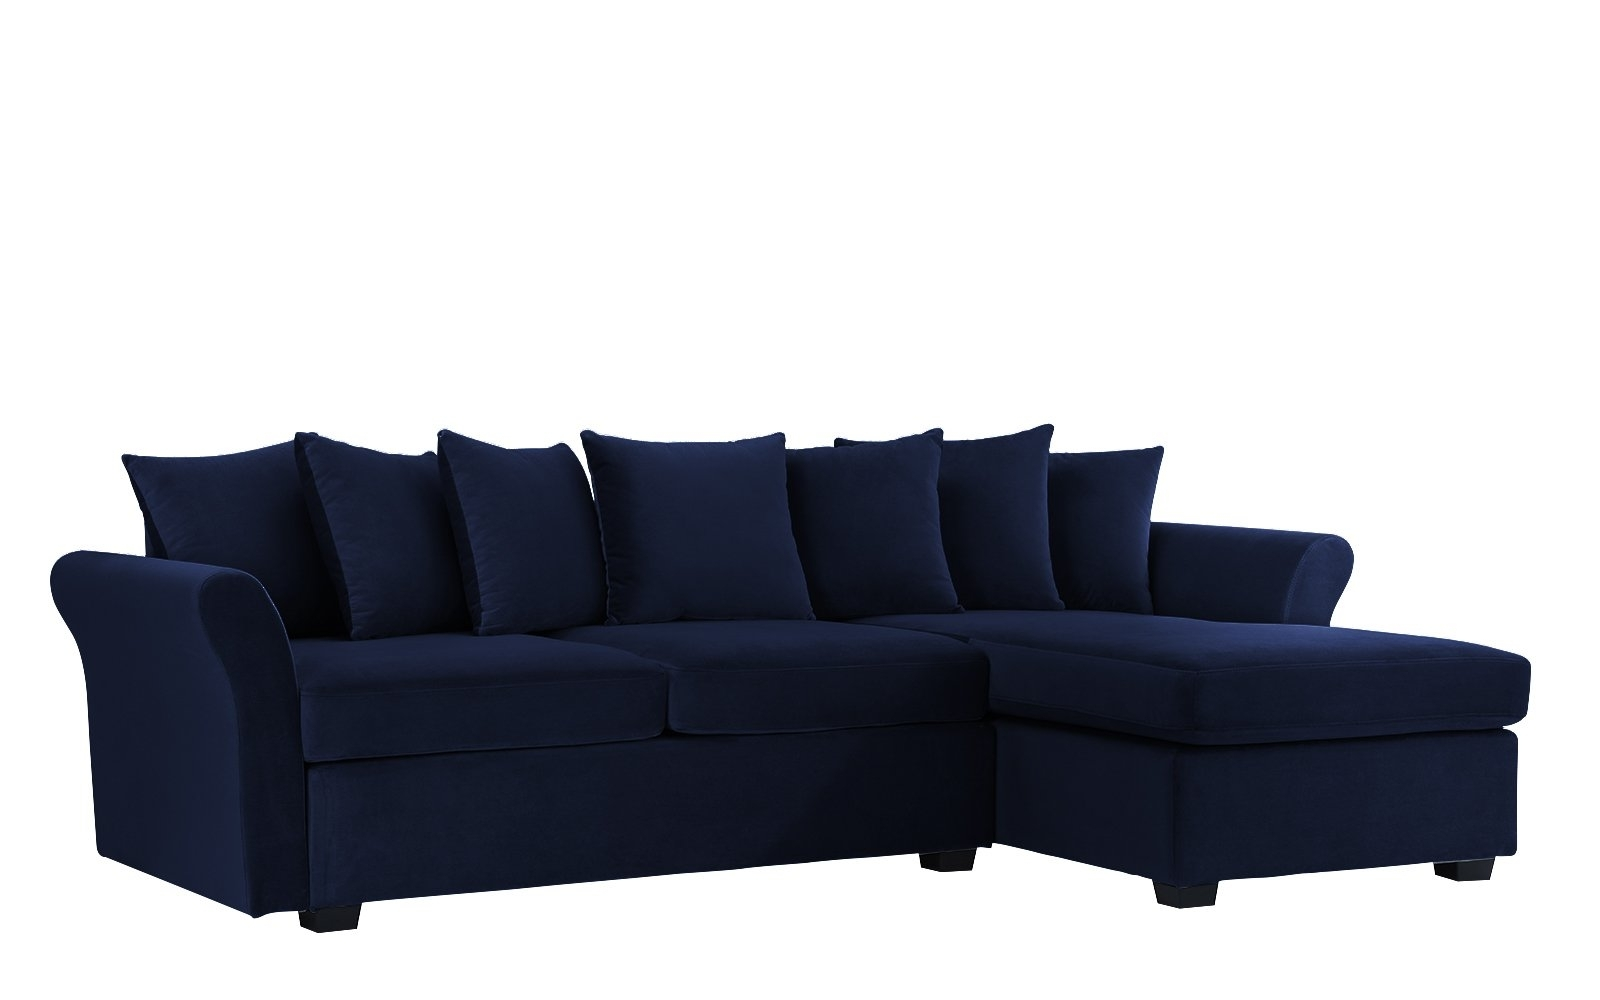 Popular Vt Sectional Sofas Throughout Wide Sofa – Home And Textiles (View 13 of 21)